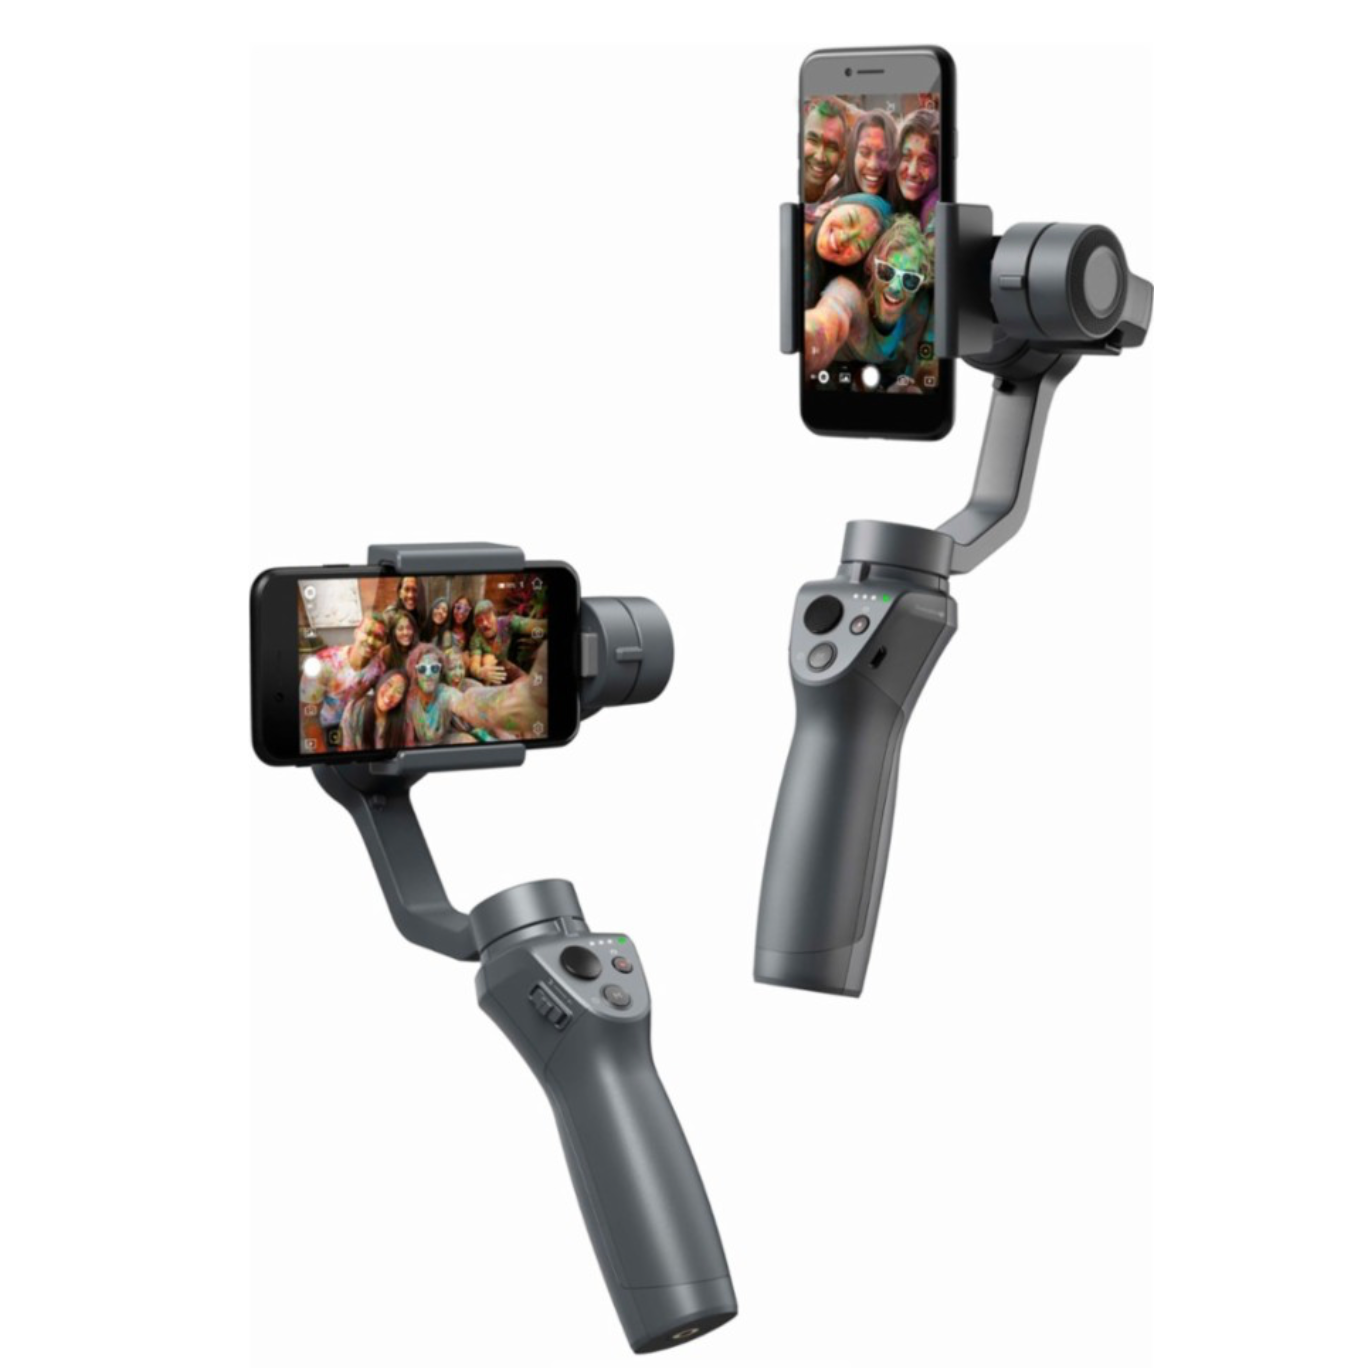 DJI - Osmo Mobile 2 3-Axis Gimbal Stabilizer for Mobile Phones